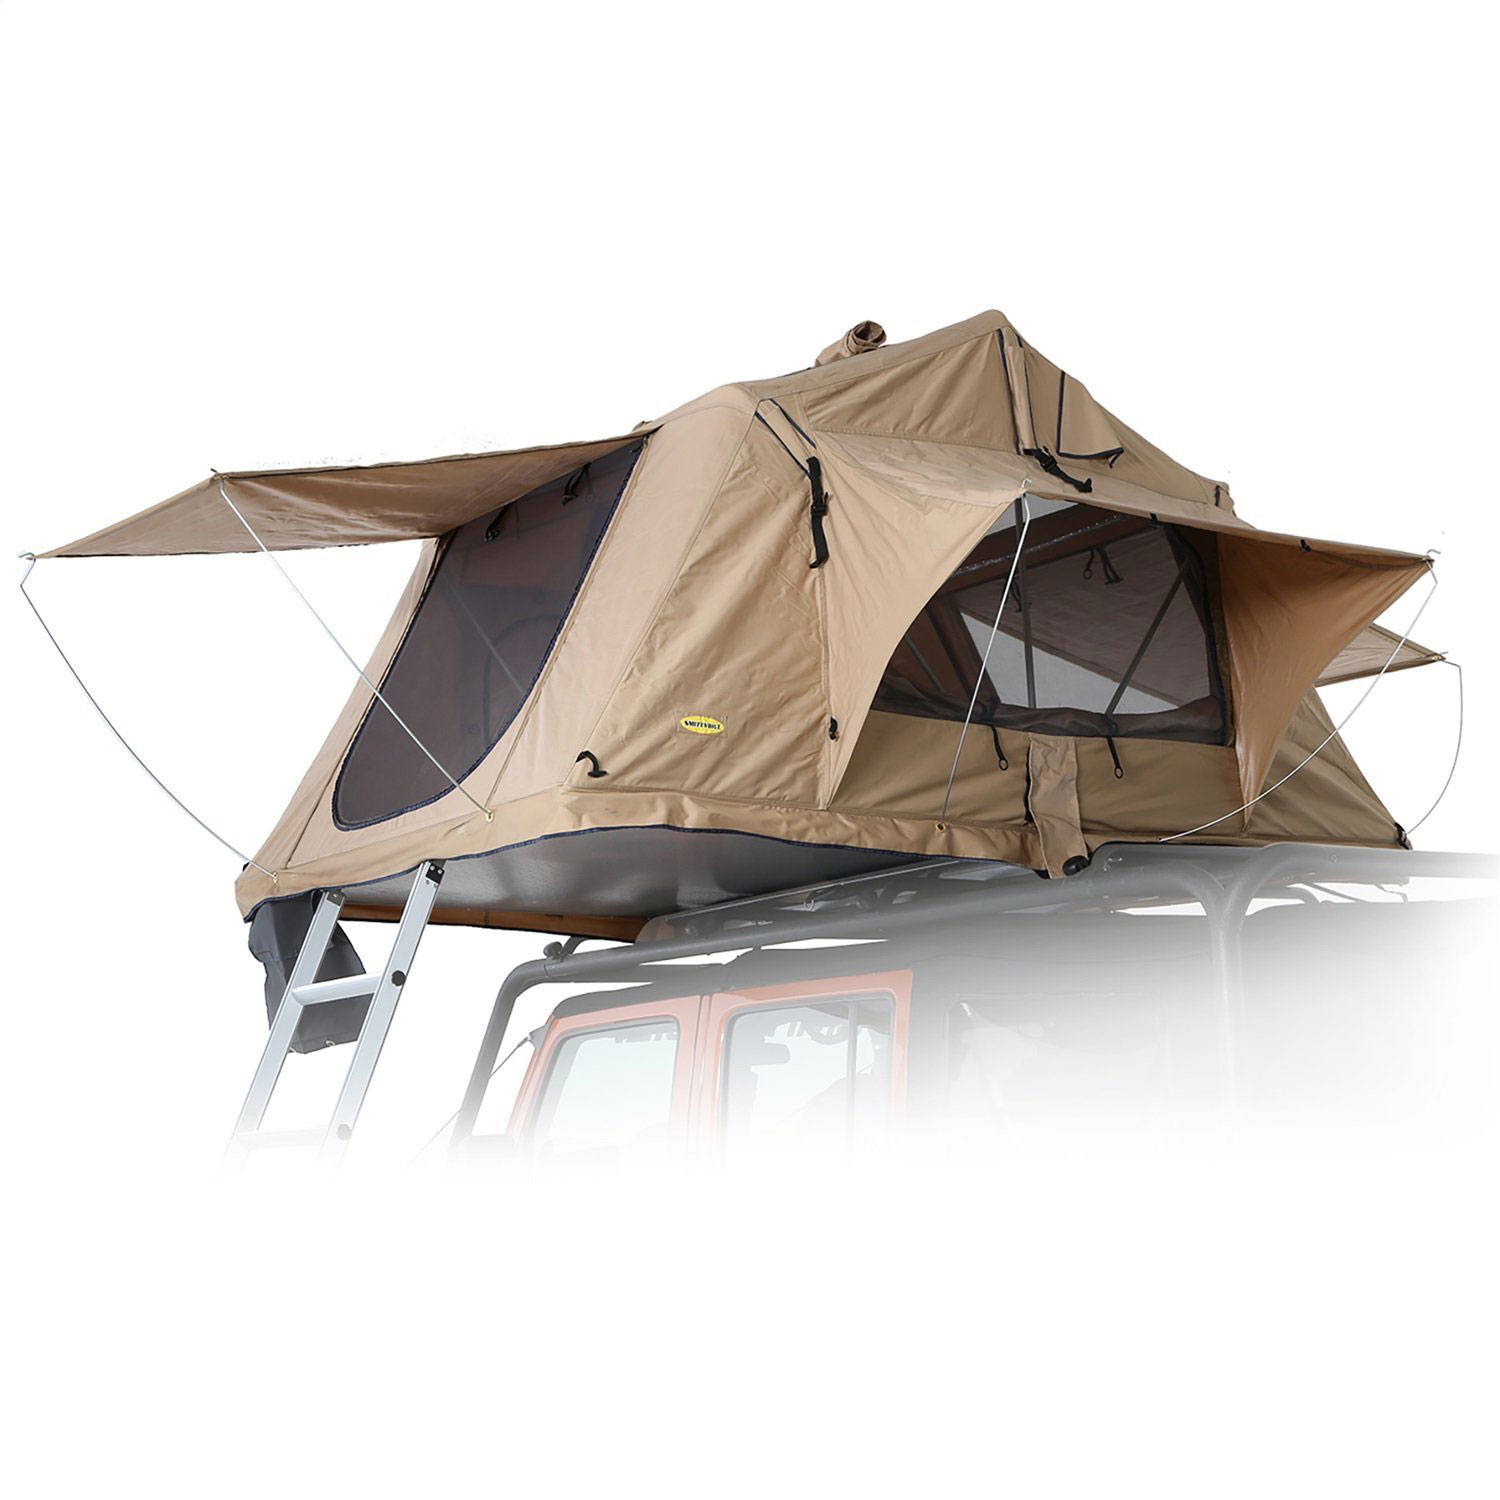 Smittybilt 2783 Overlander Roof Top Camping Folded Tent with Ladder, Coyote Tan